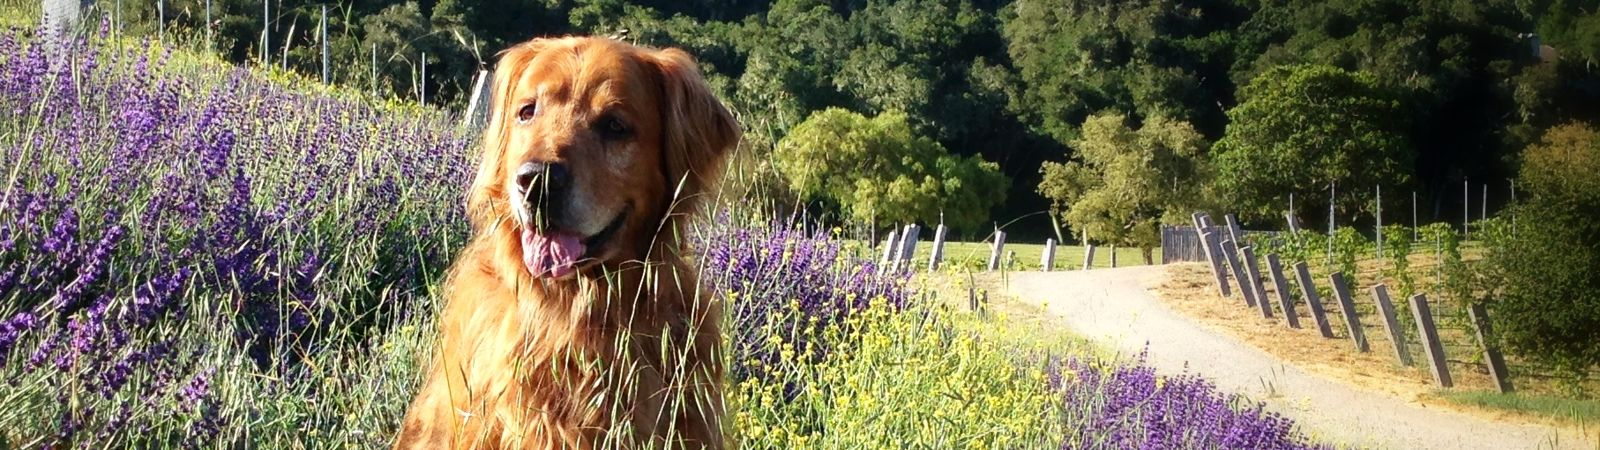 Carmel Valley Ranch_Pets_dog in lavender field